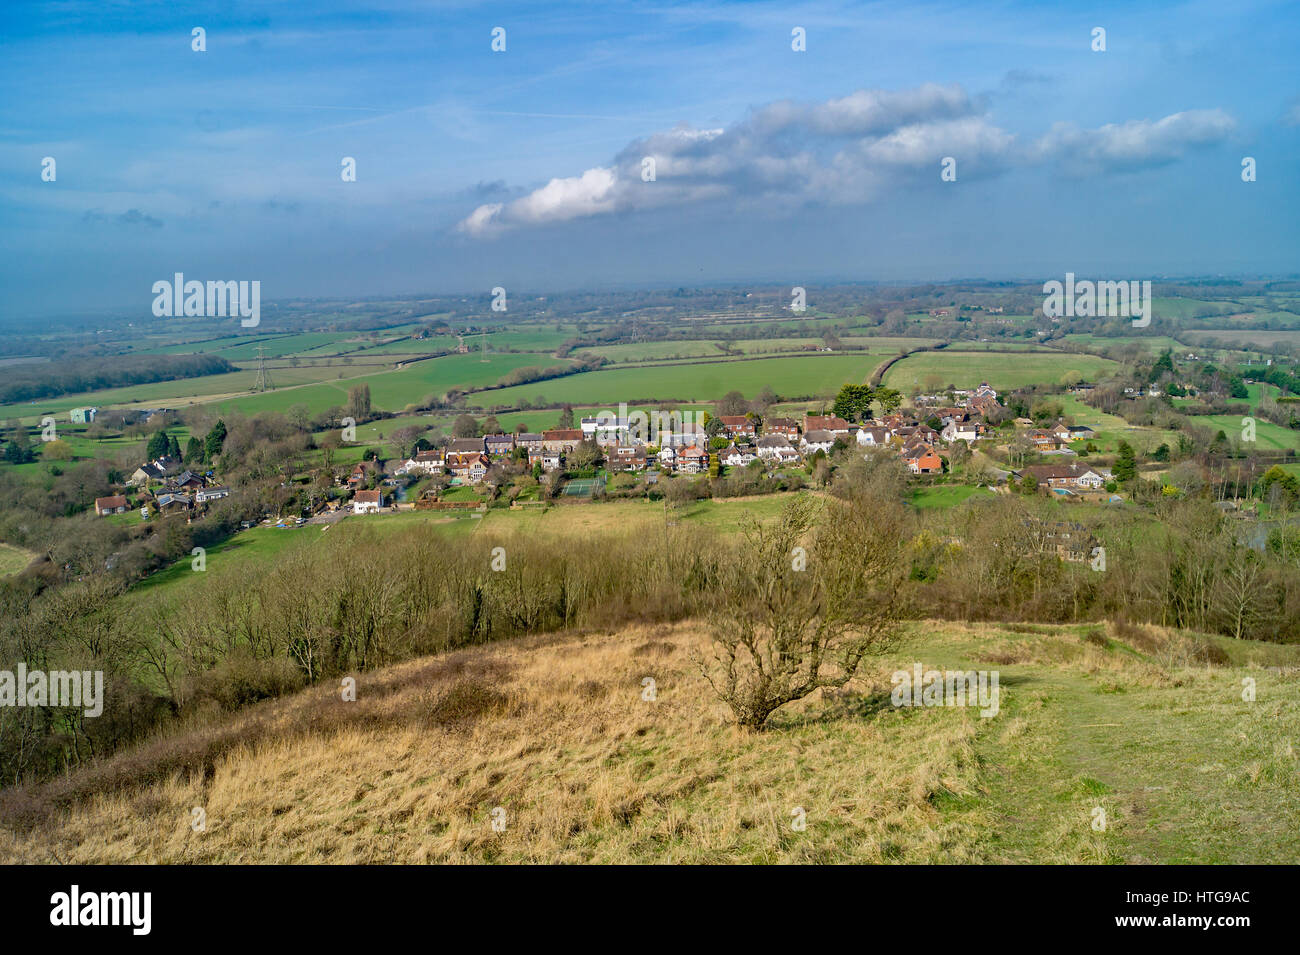 A English country village down the hill - Stock Image